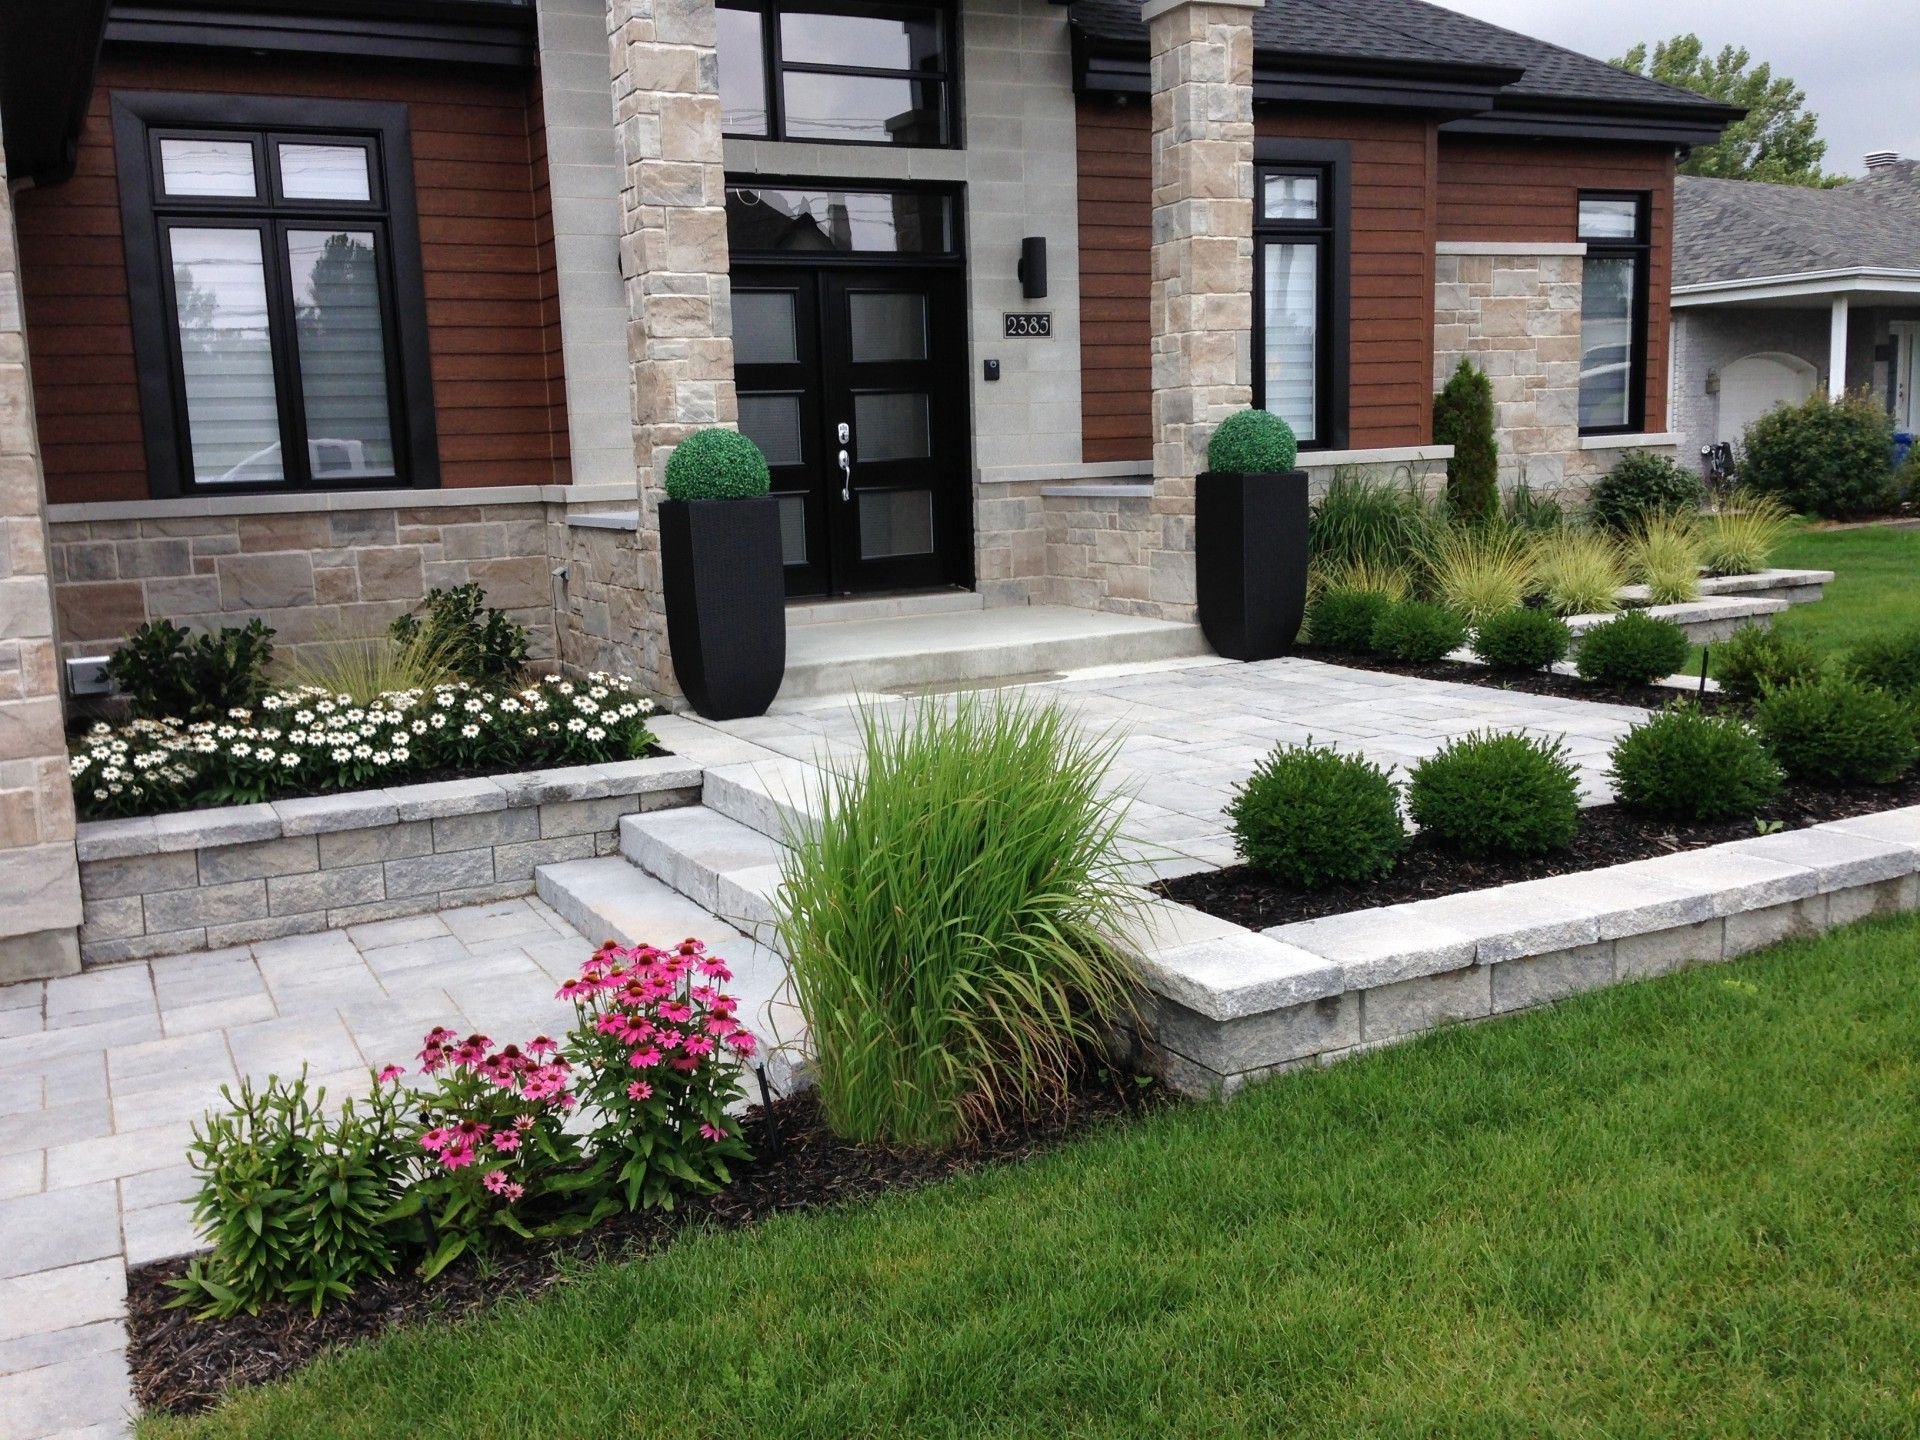 Photo Pic Amenagement Paysager Devant Maison Photo Sur Amenagement Paysager Devant Front House Landscaping Front Yard Landscaping Design Front Yard Landscaping